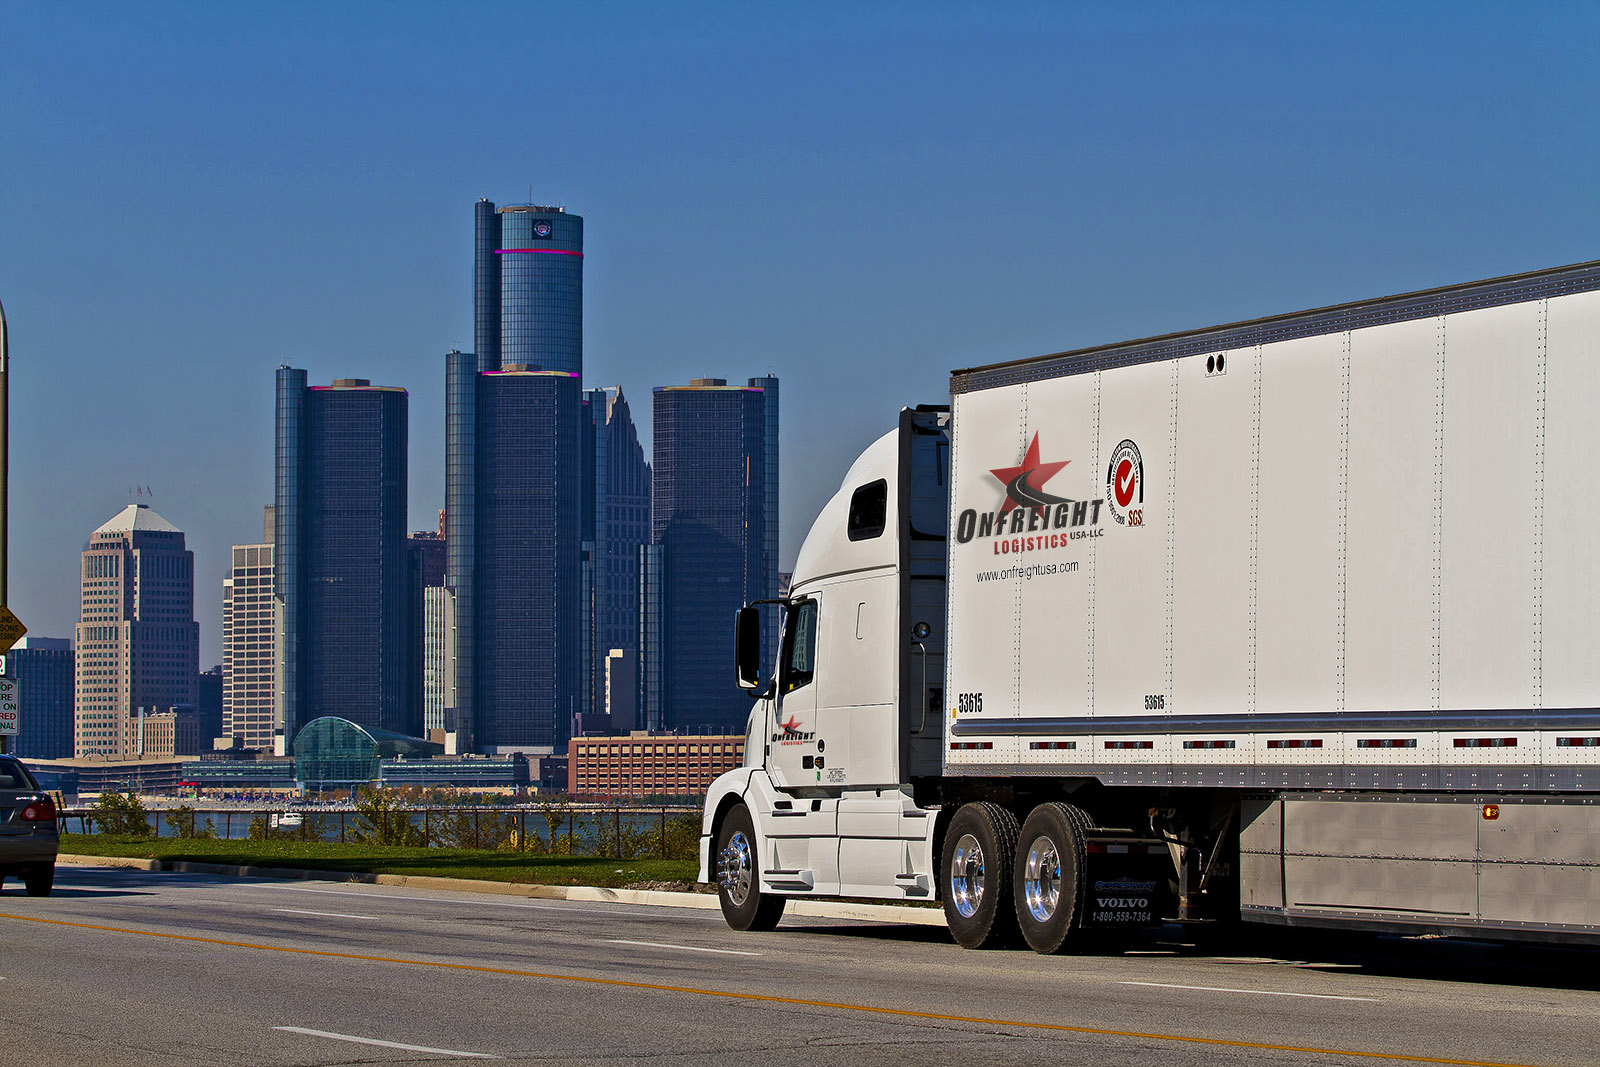 Onfreight Logistics USA Michigan Skyline